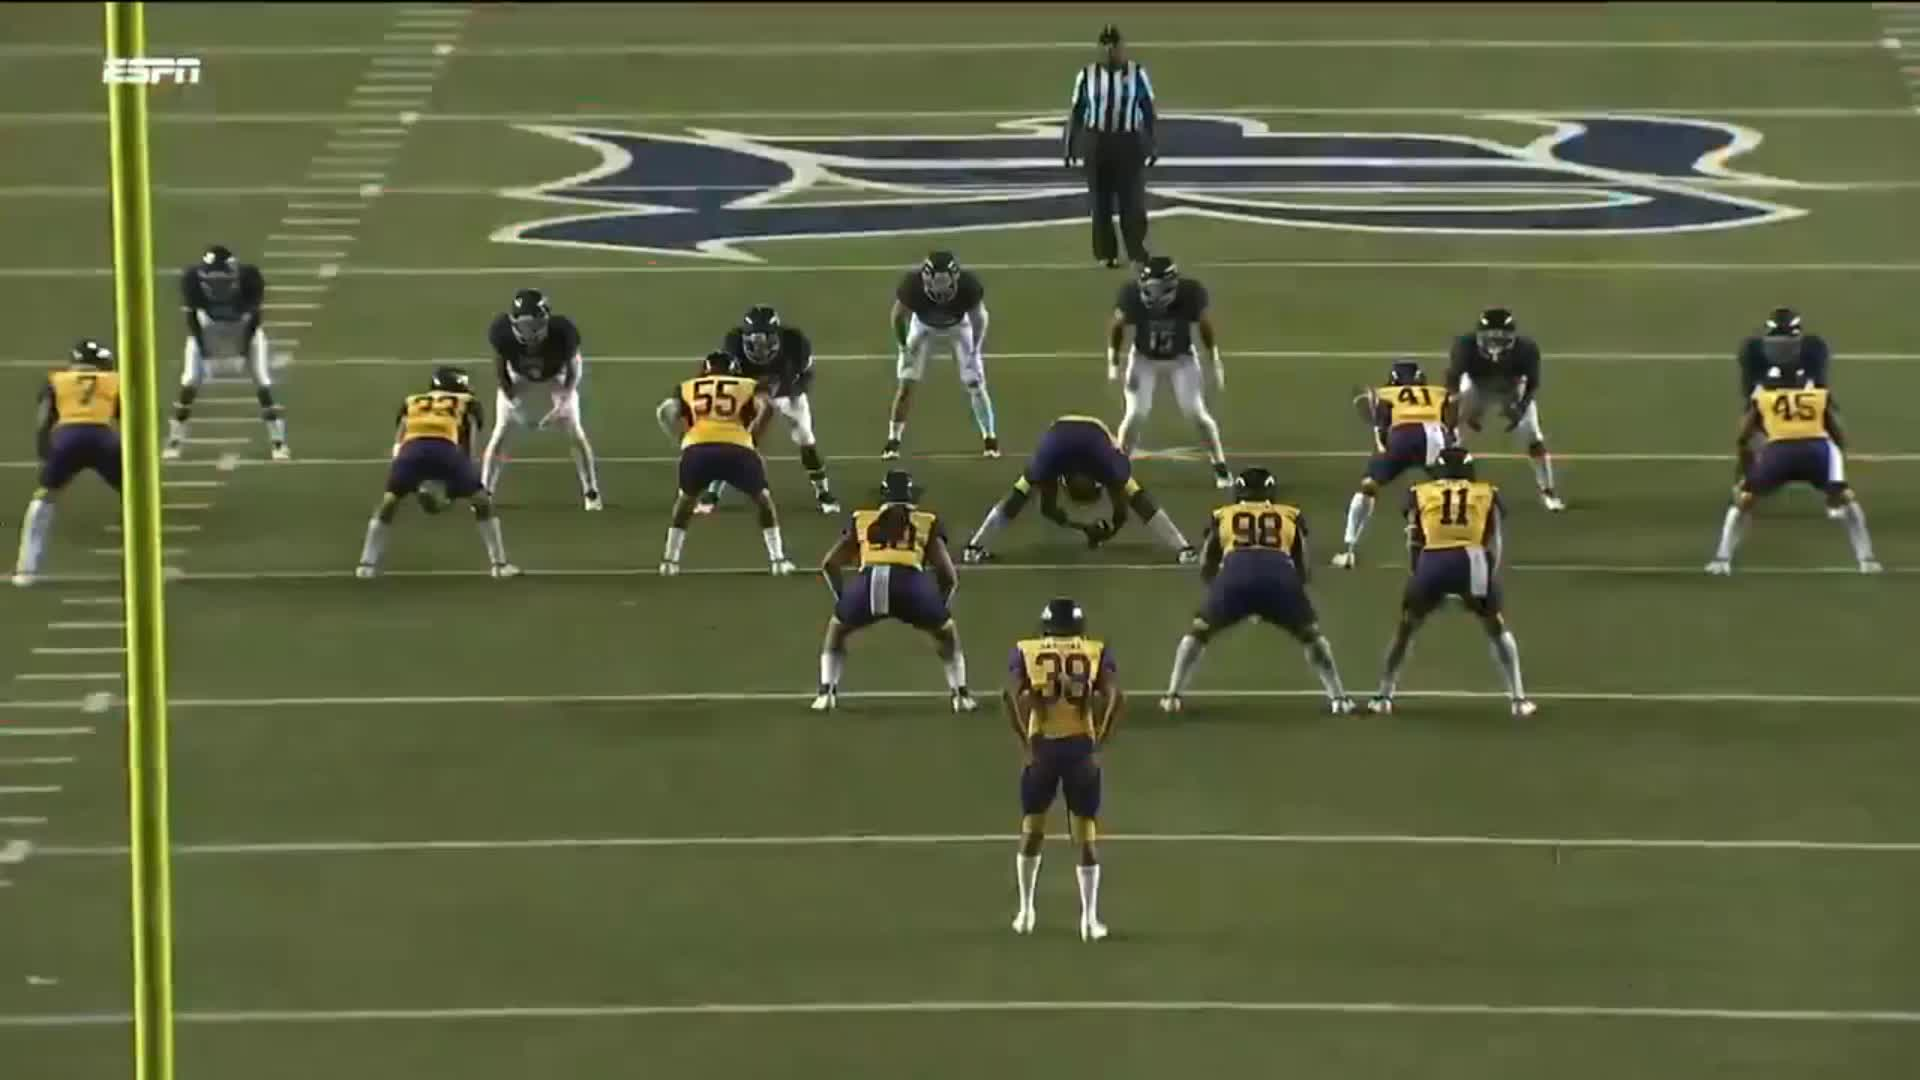 cfb, football, CFB 2018 - Pararie View @ Rice: Safety GIFs